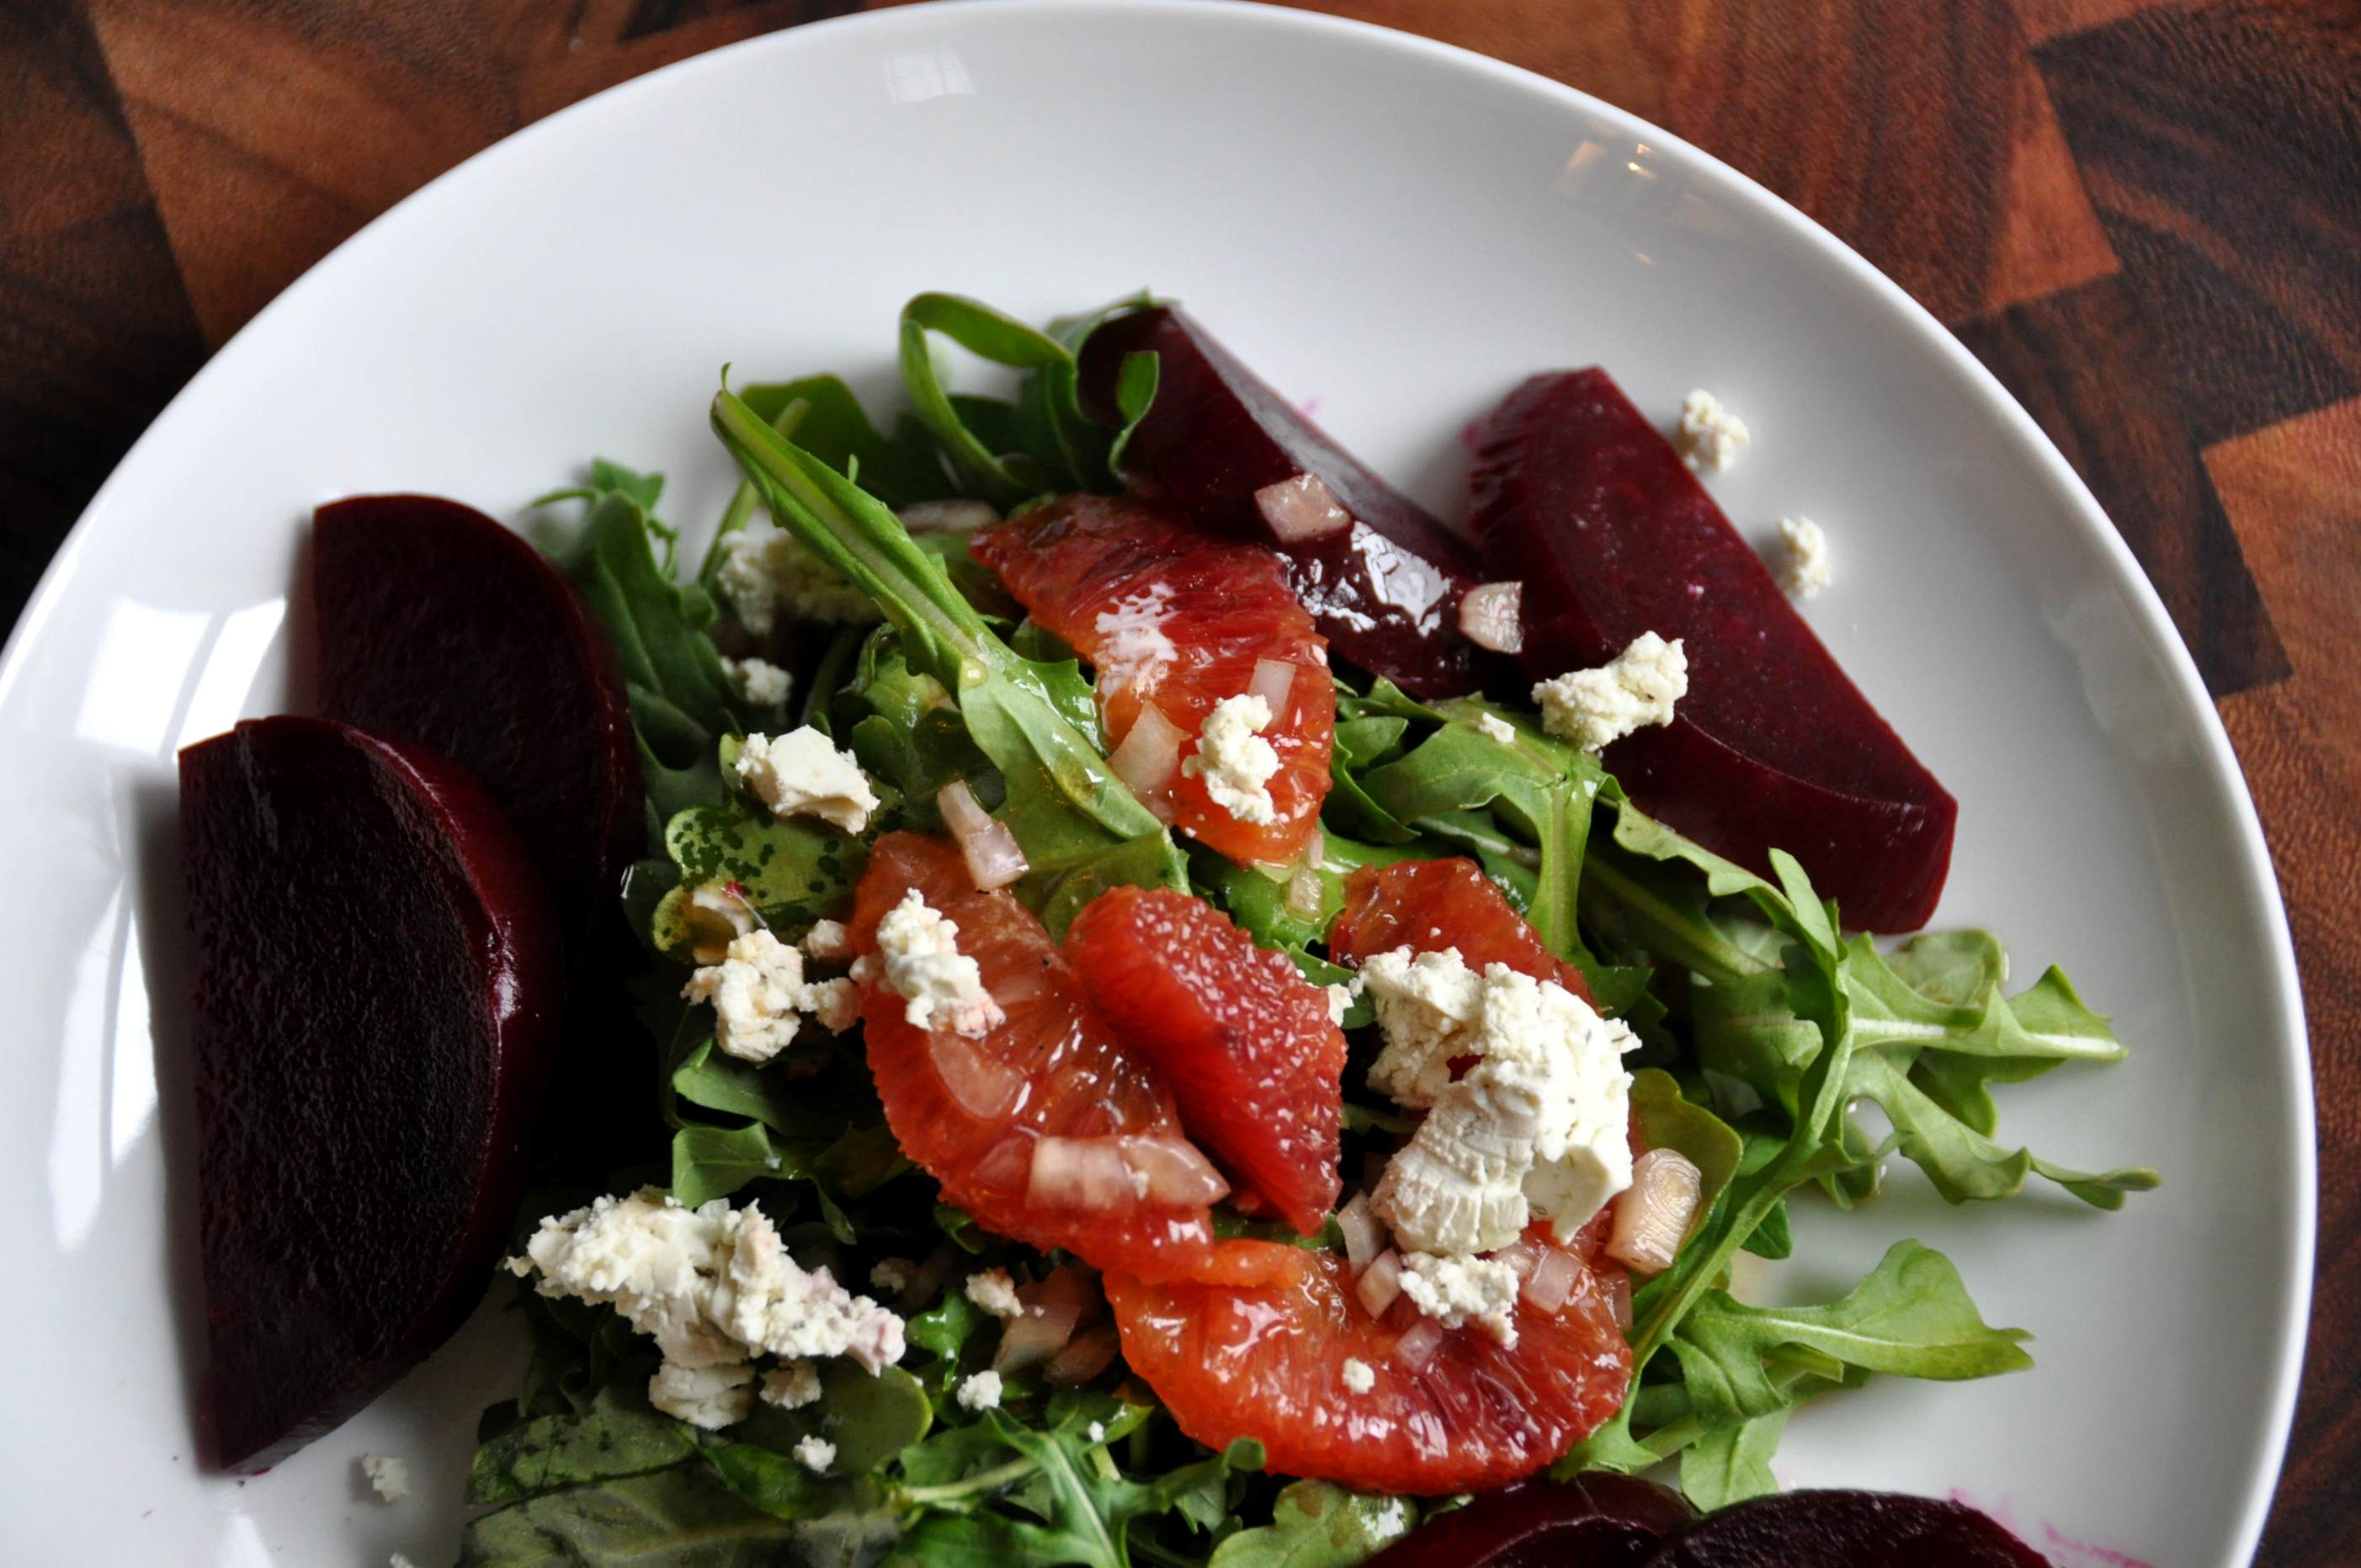 Beet Root Salad with Blood Oranges and Goat's Cheese